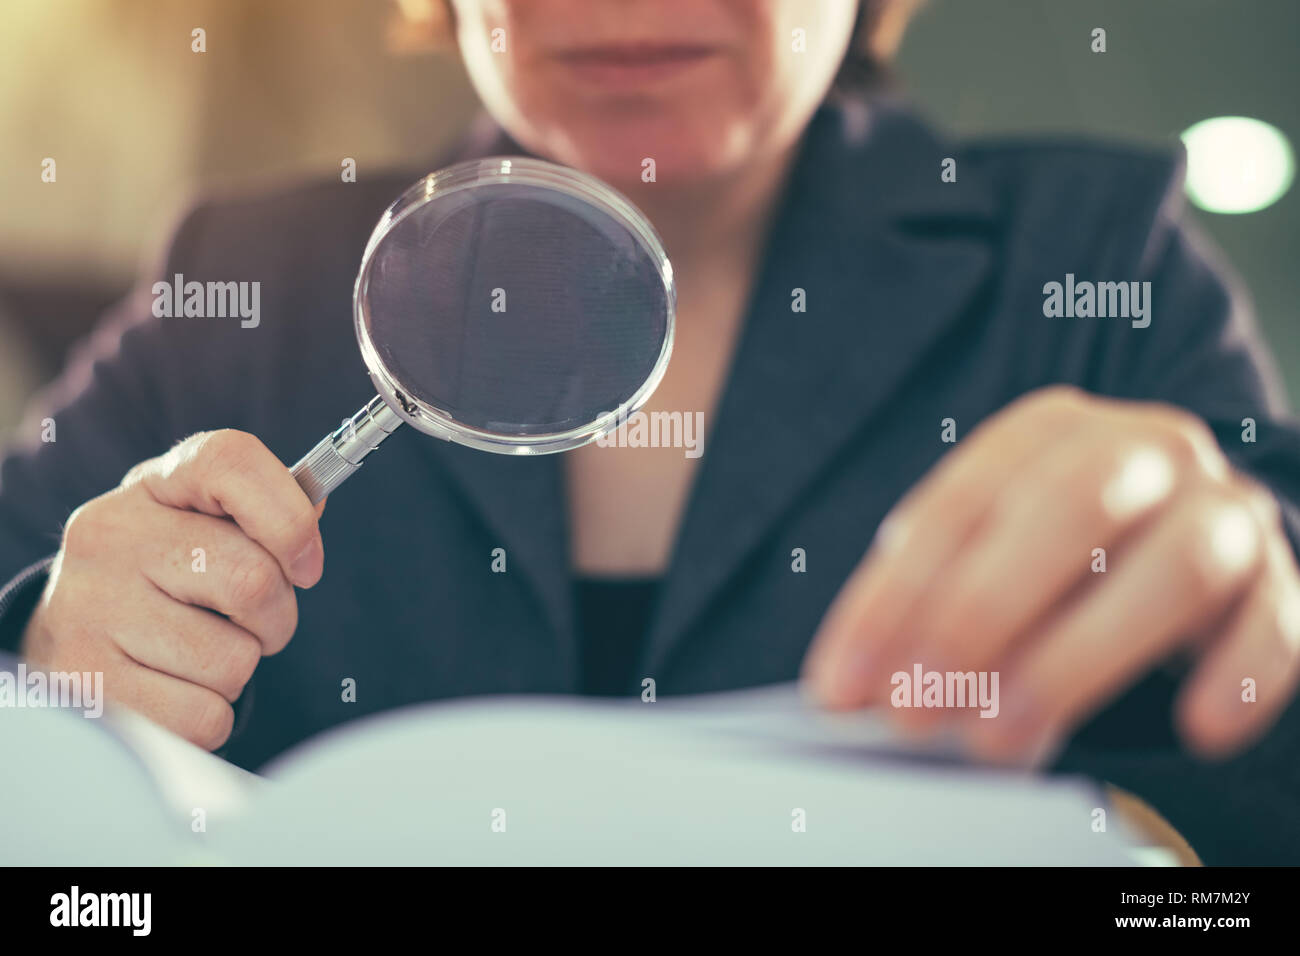 Business corruption audit inspection concept, female inspector using magnifying glass Stock Photo